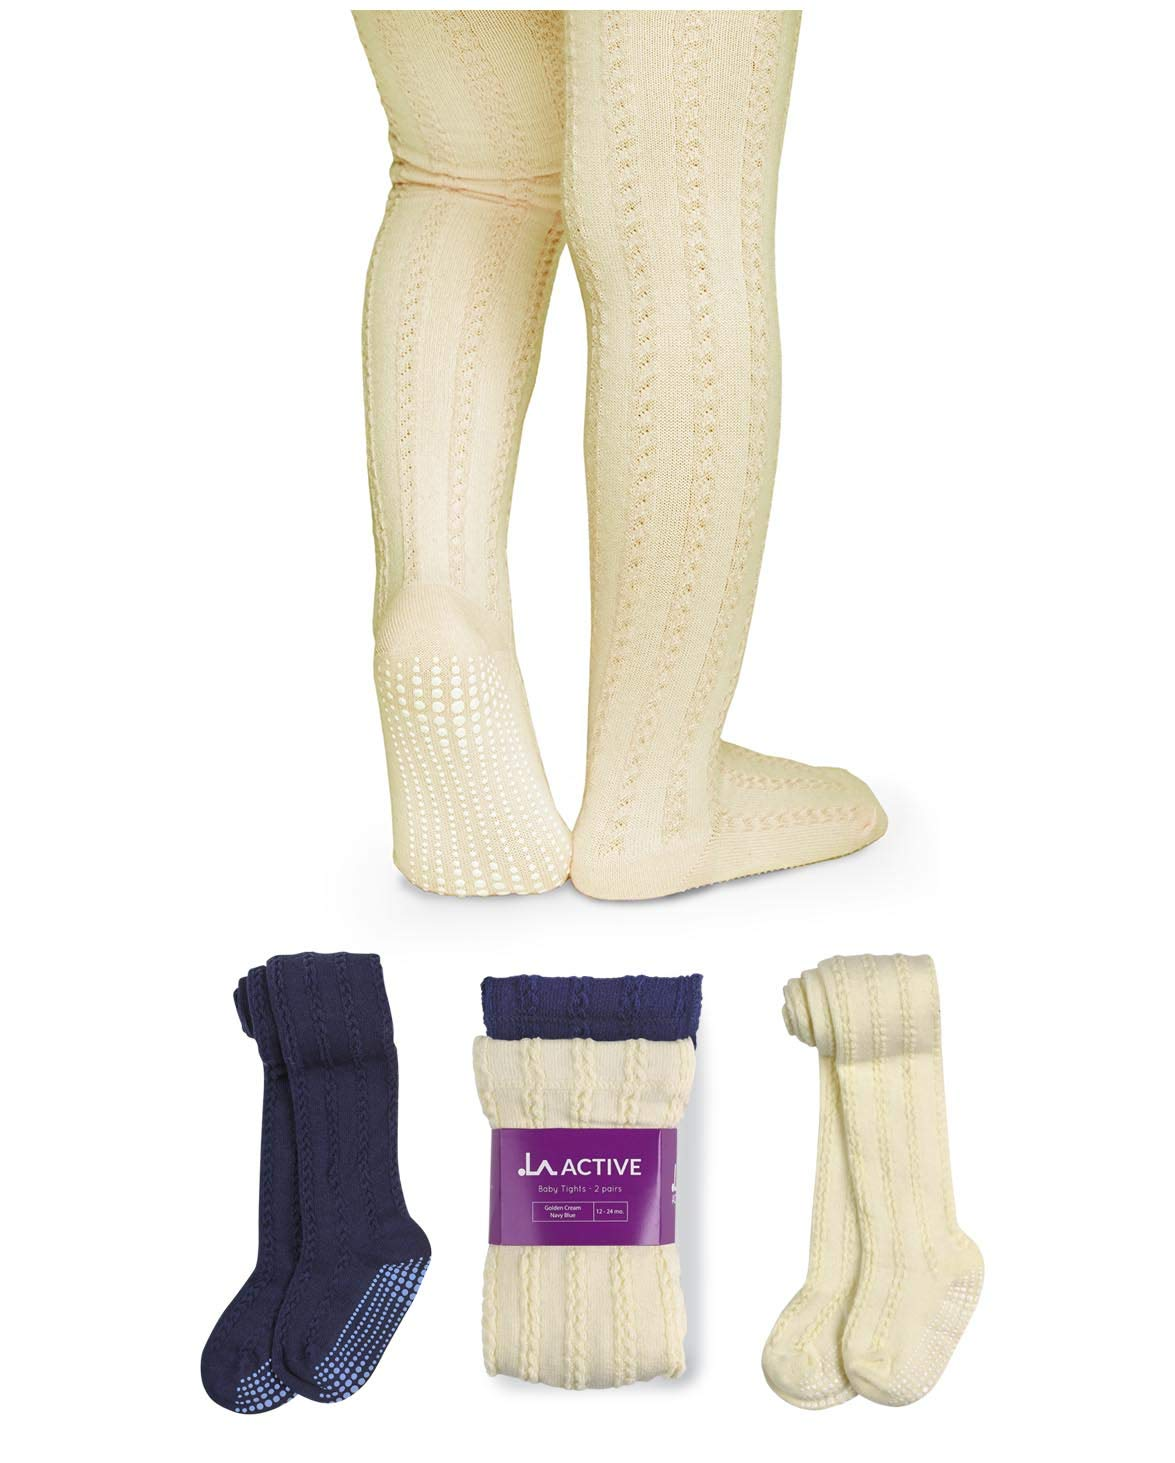 LA Active Baby Tights - 2 Pairs - Non Skid/Slip Cable Knit (Cream & Navy, 2T-3T)